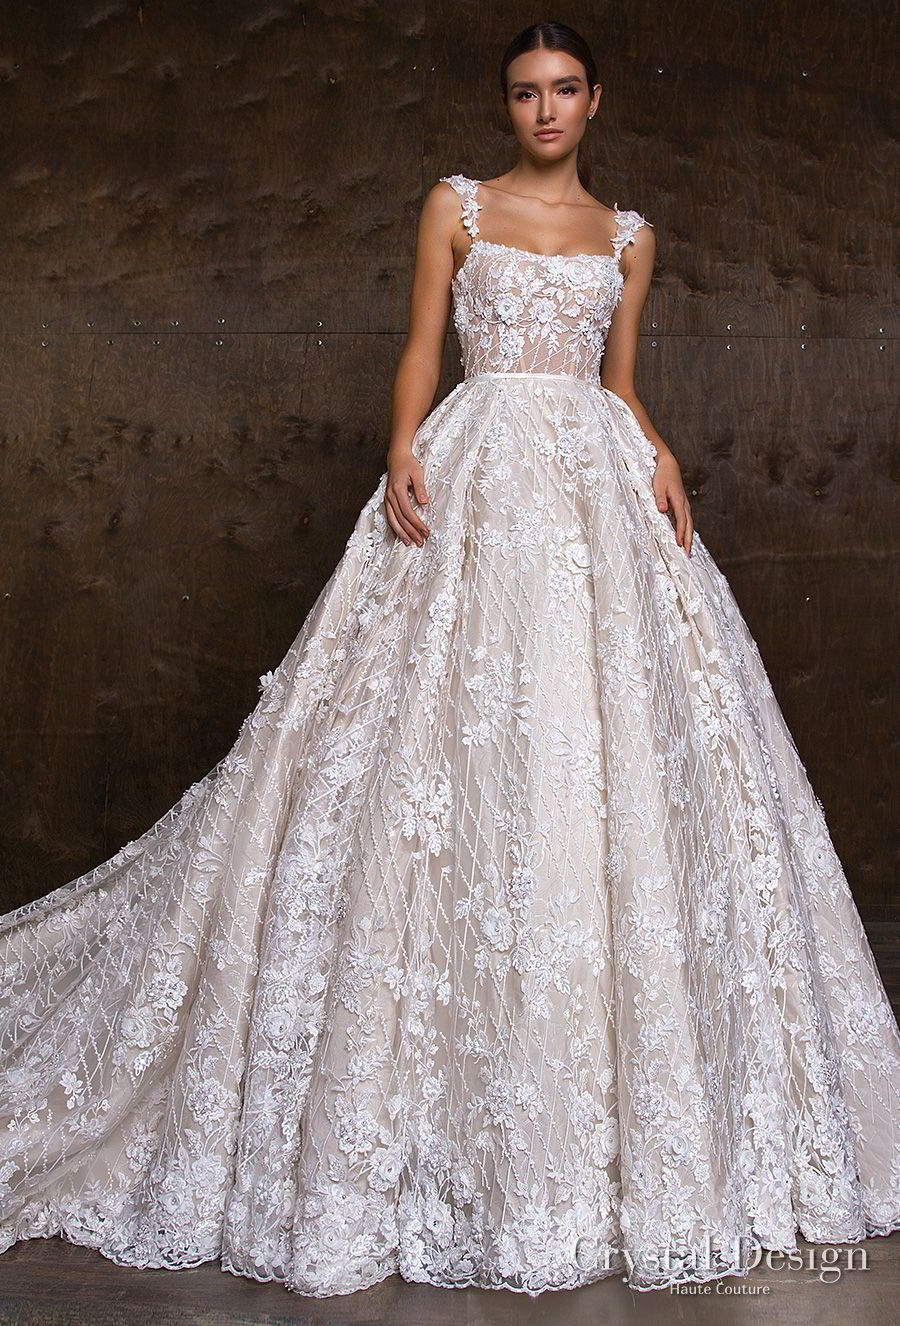 Lace strap wedding dress  crystal design  sleeveless lace strap straight across full